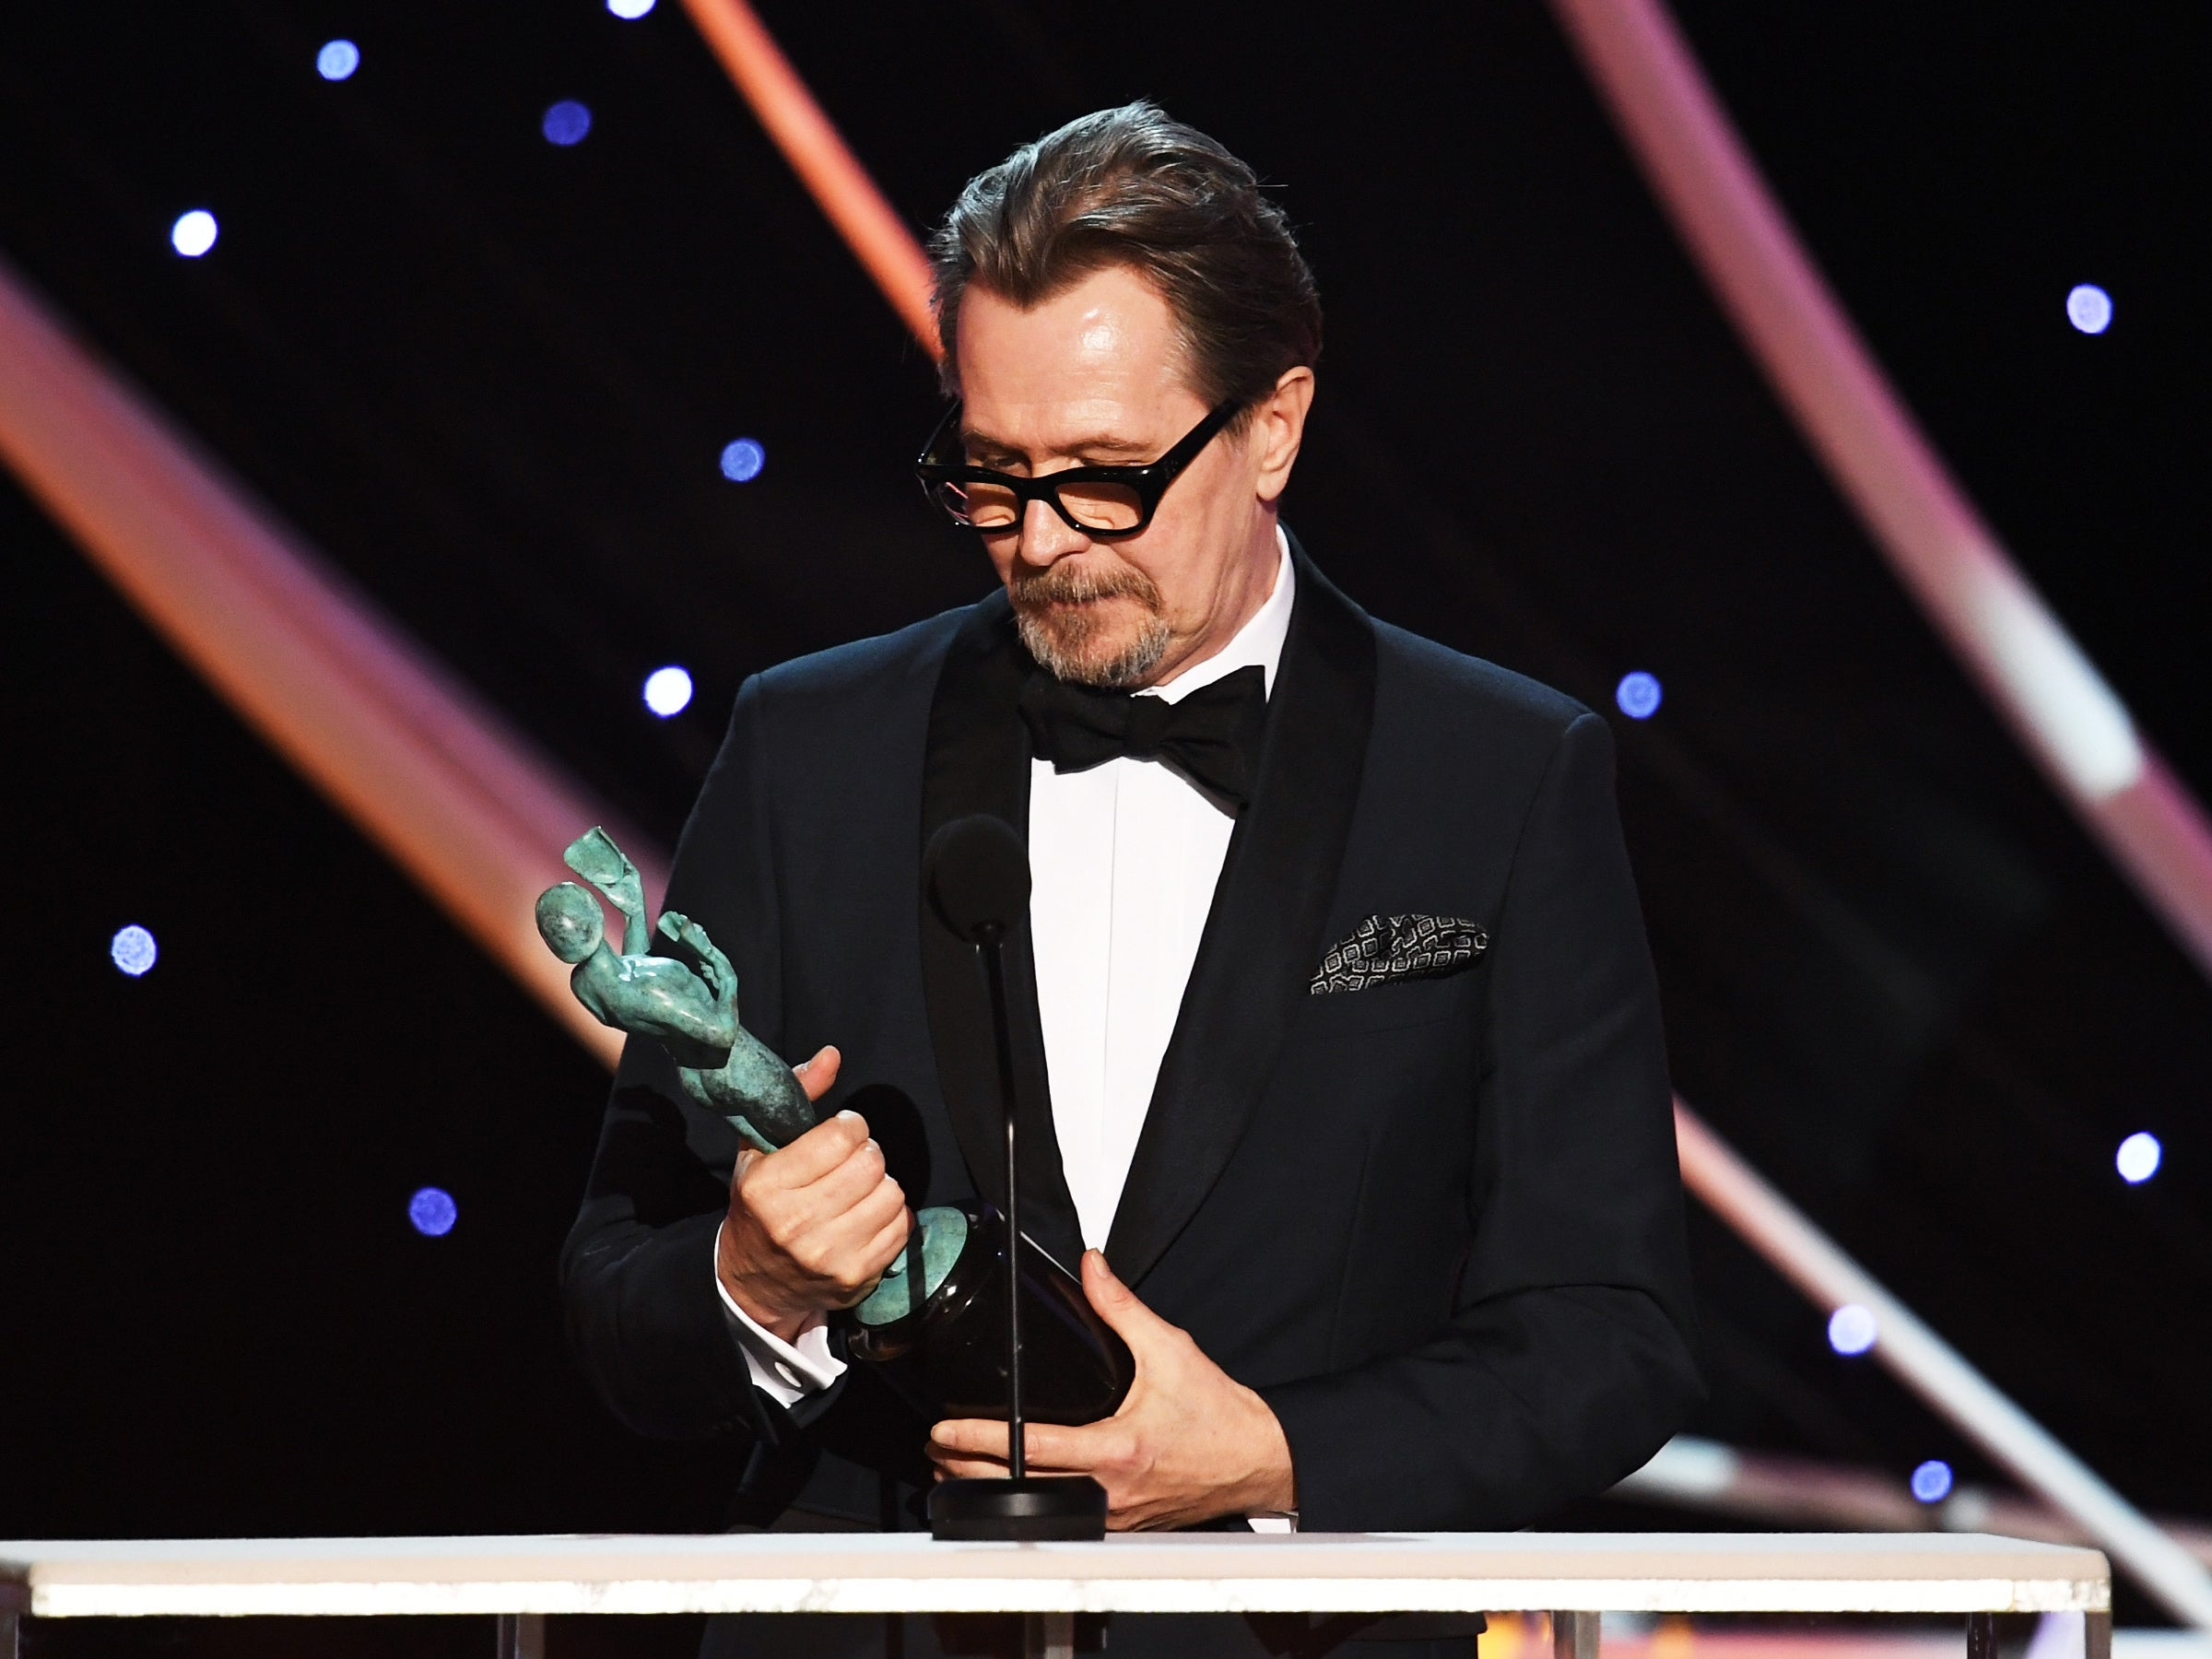 Gary Oldman is the Oscars Best Actor frontrunner following SAG win